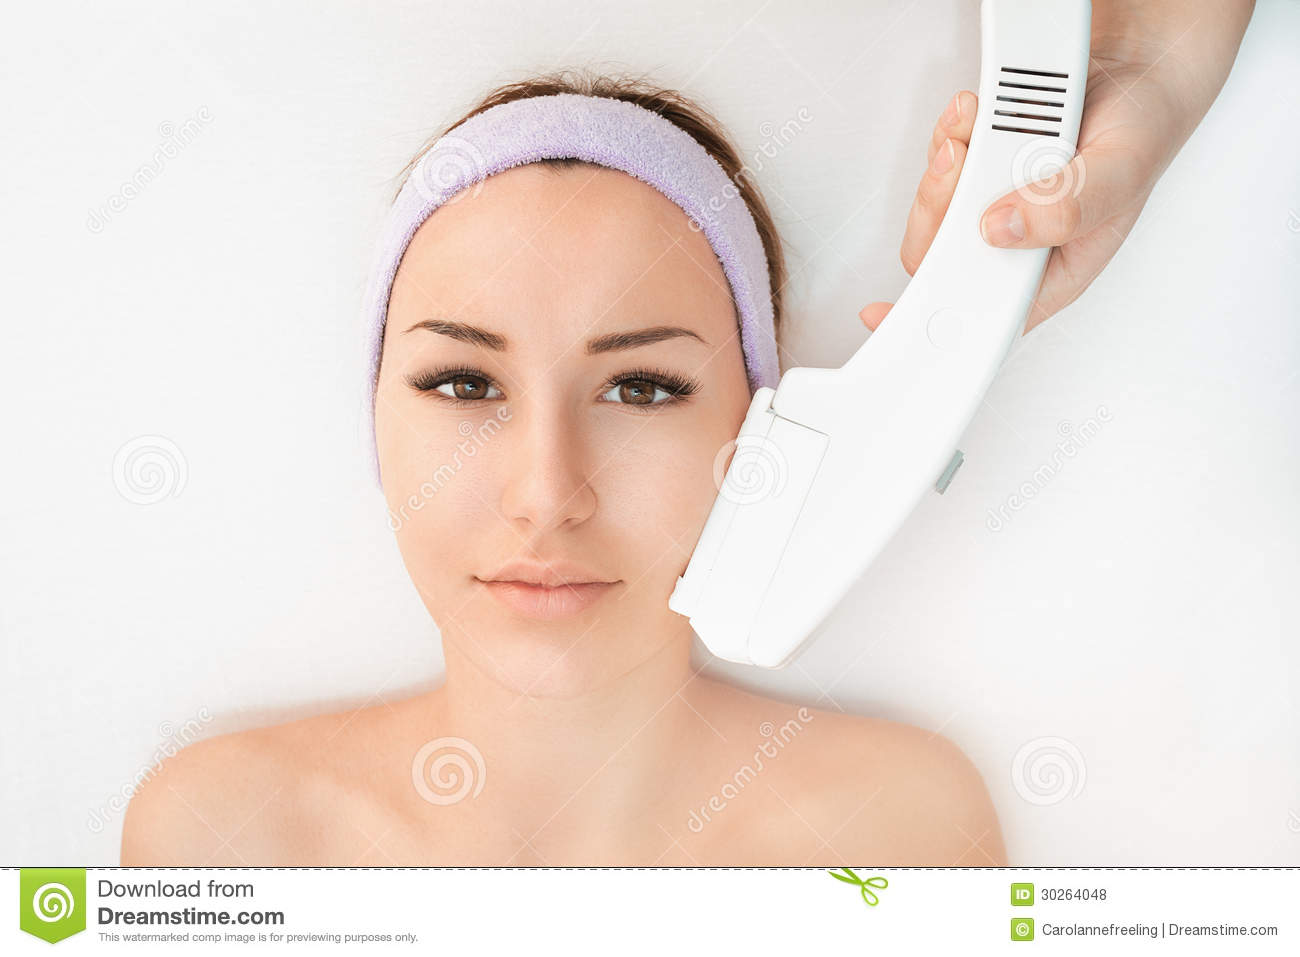 young woman receiving epilation laser treatment royalty free stock photos image 30264048. Black Bedroom Furniture Sets. Home Design Ideas